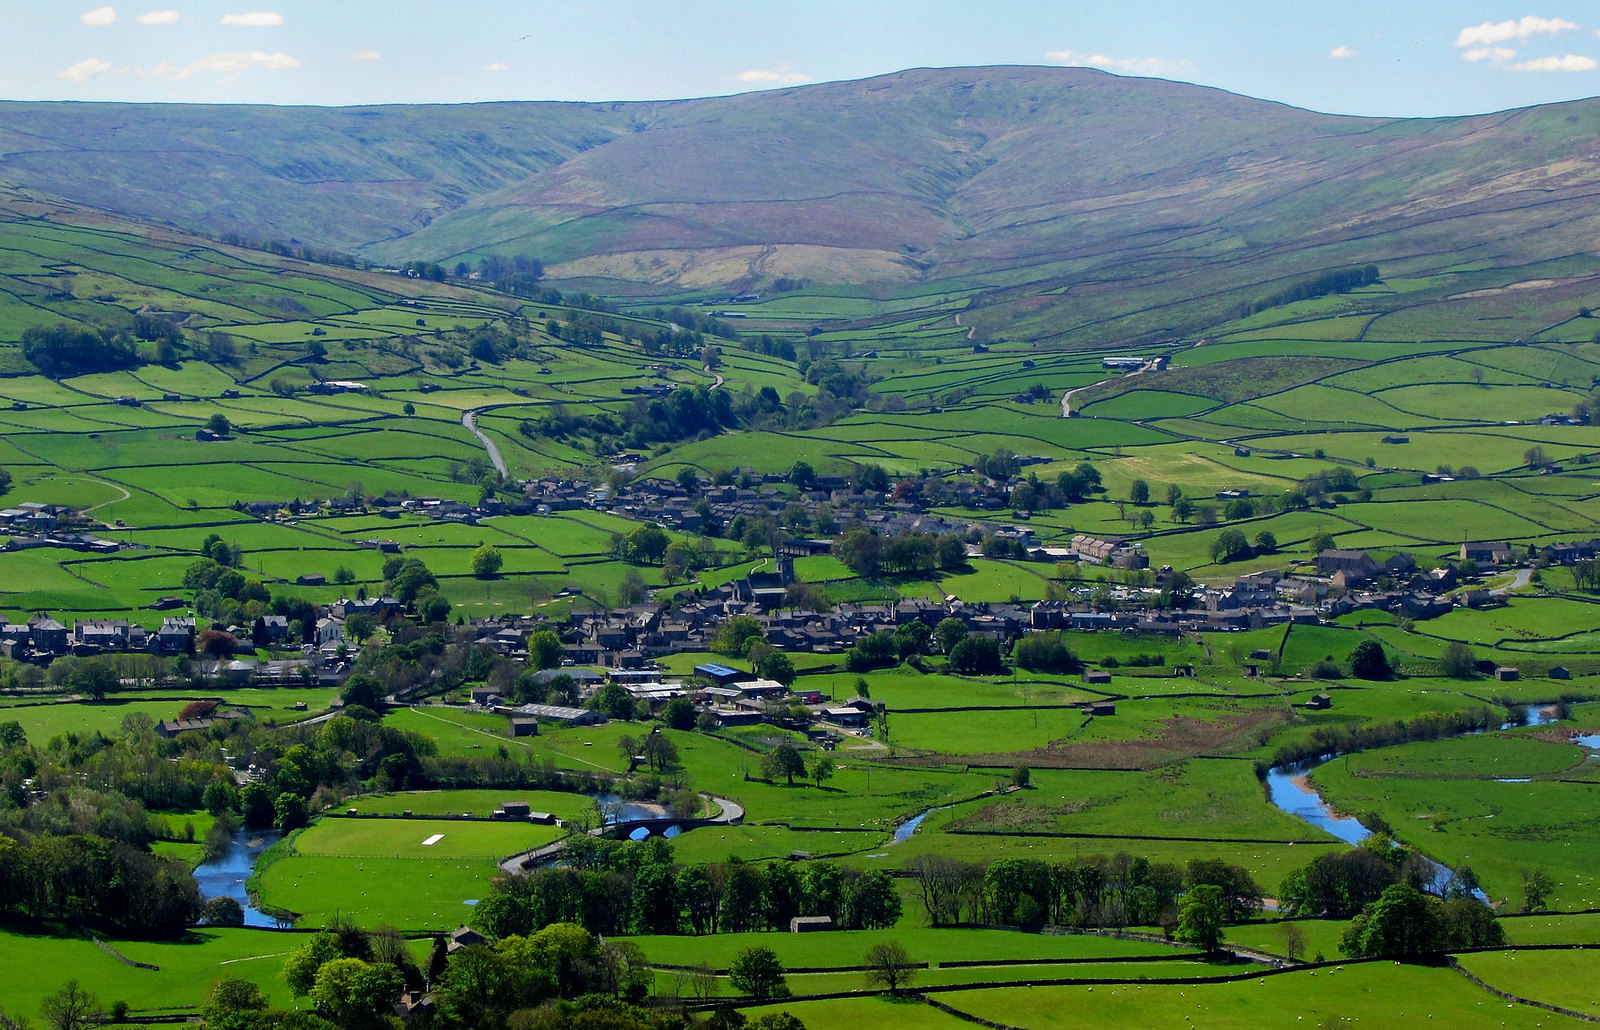 The market town of Hawes at the head of Wensleydale. Credit Peer Lawther